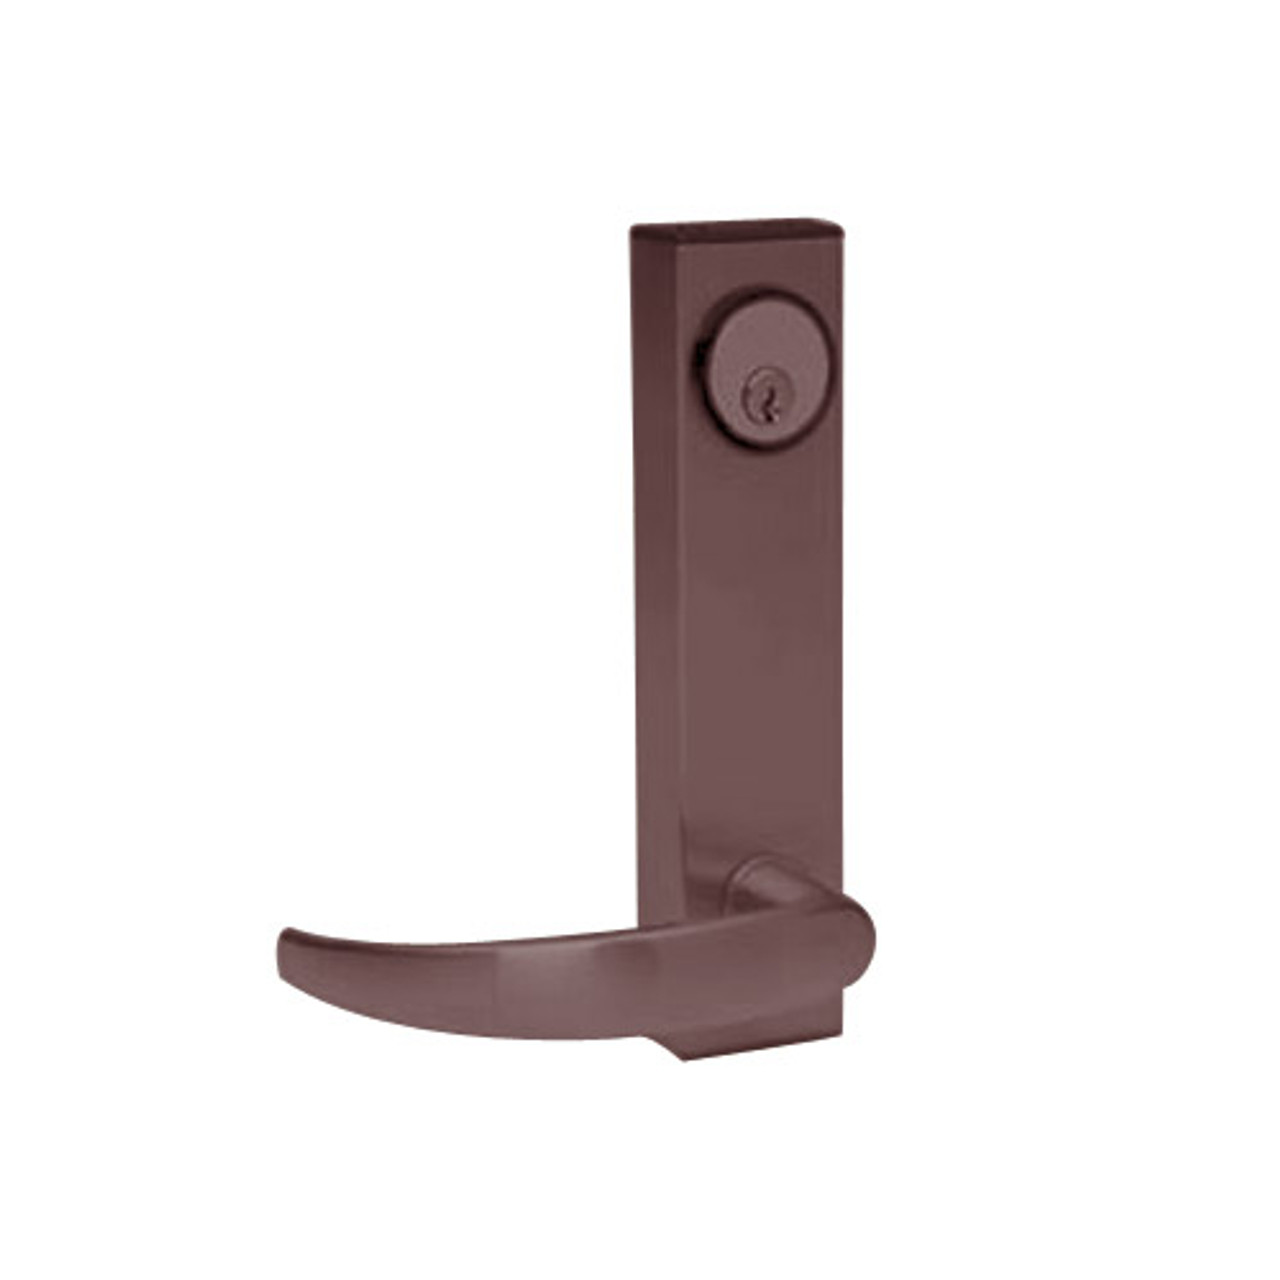 3080-01-0-94-US10B Adams Rite Standard Entry Trim with Curve Lever in Oil Rubbed Bronze Finish